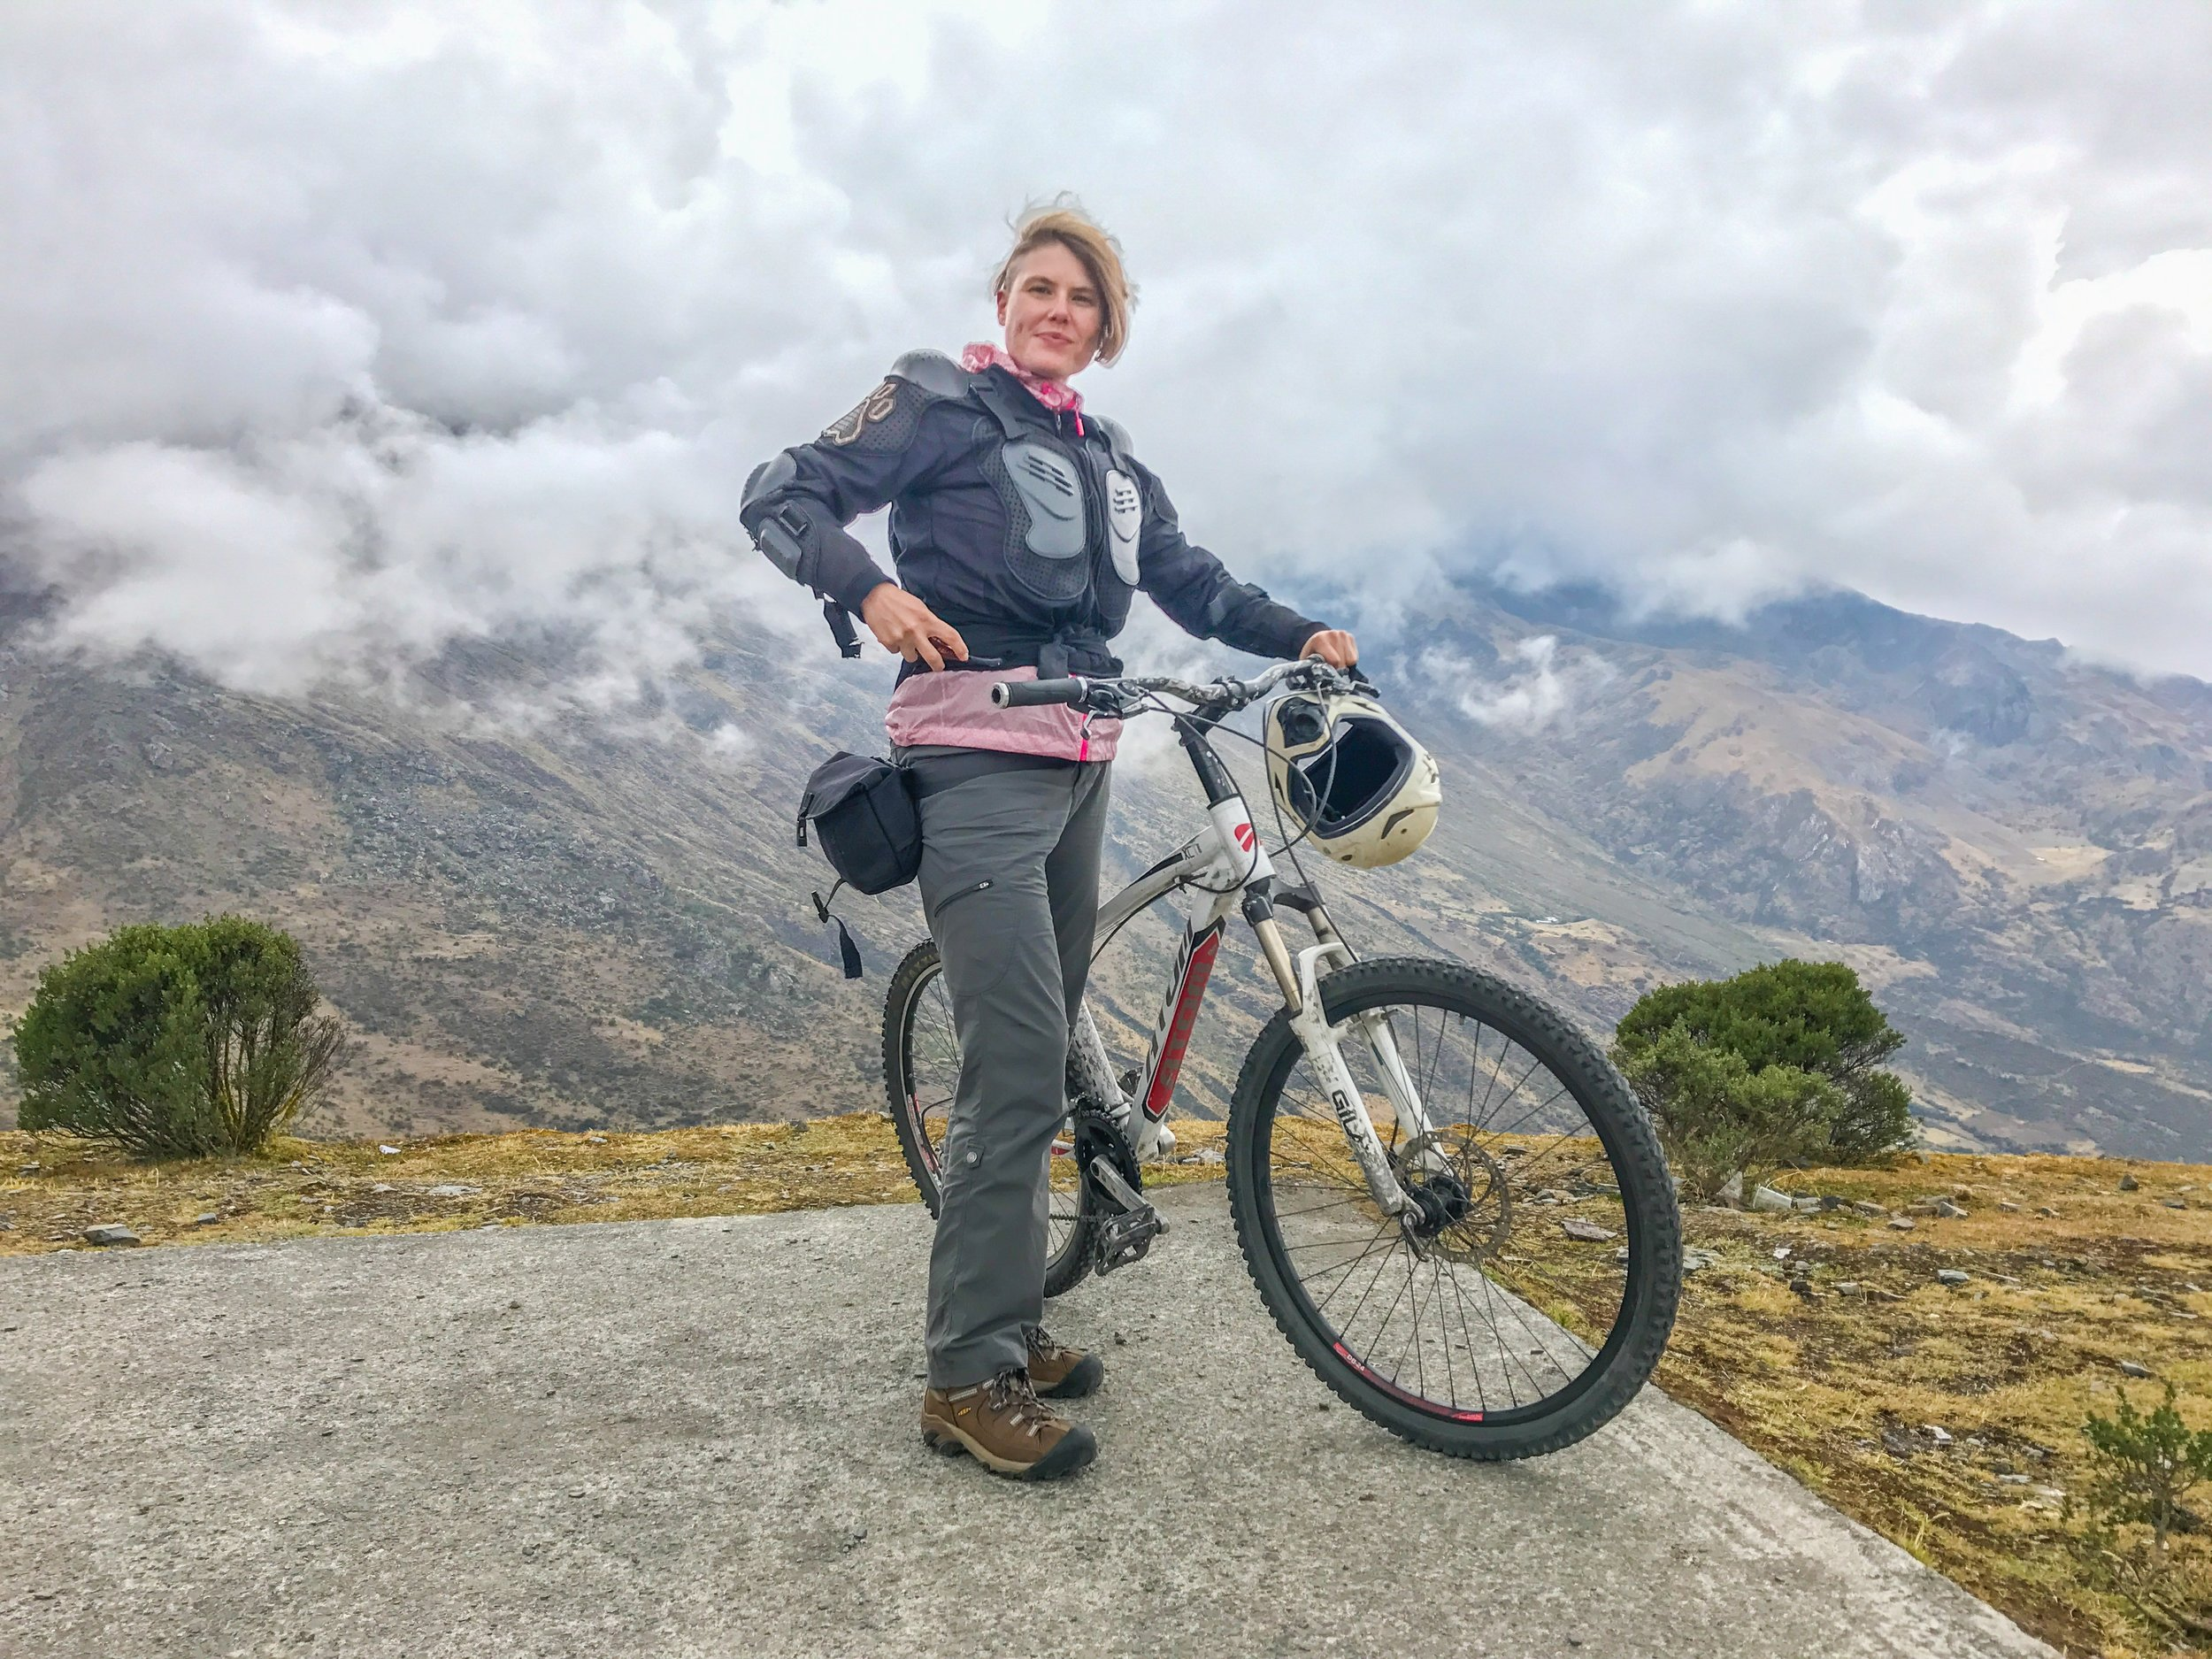 First day = 50k bike ride through Andes Mountains outside Cusco